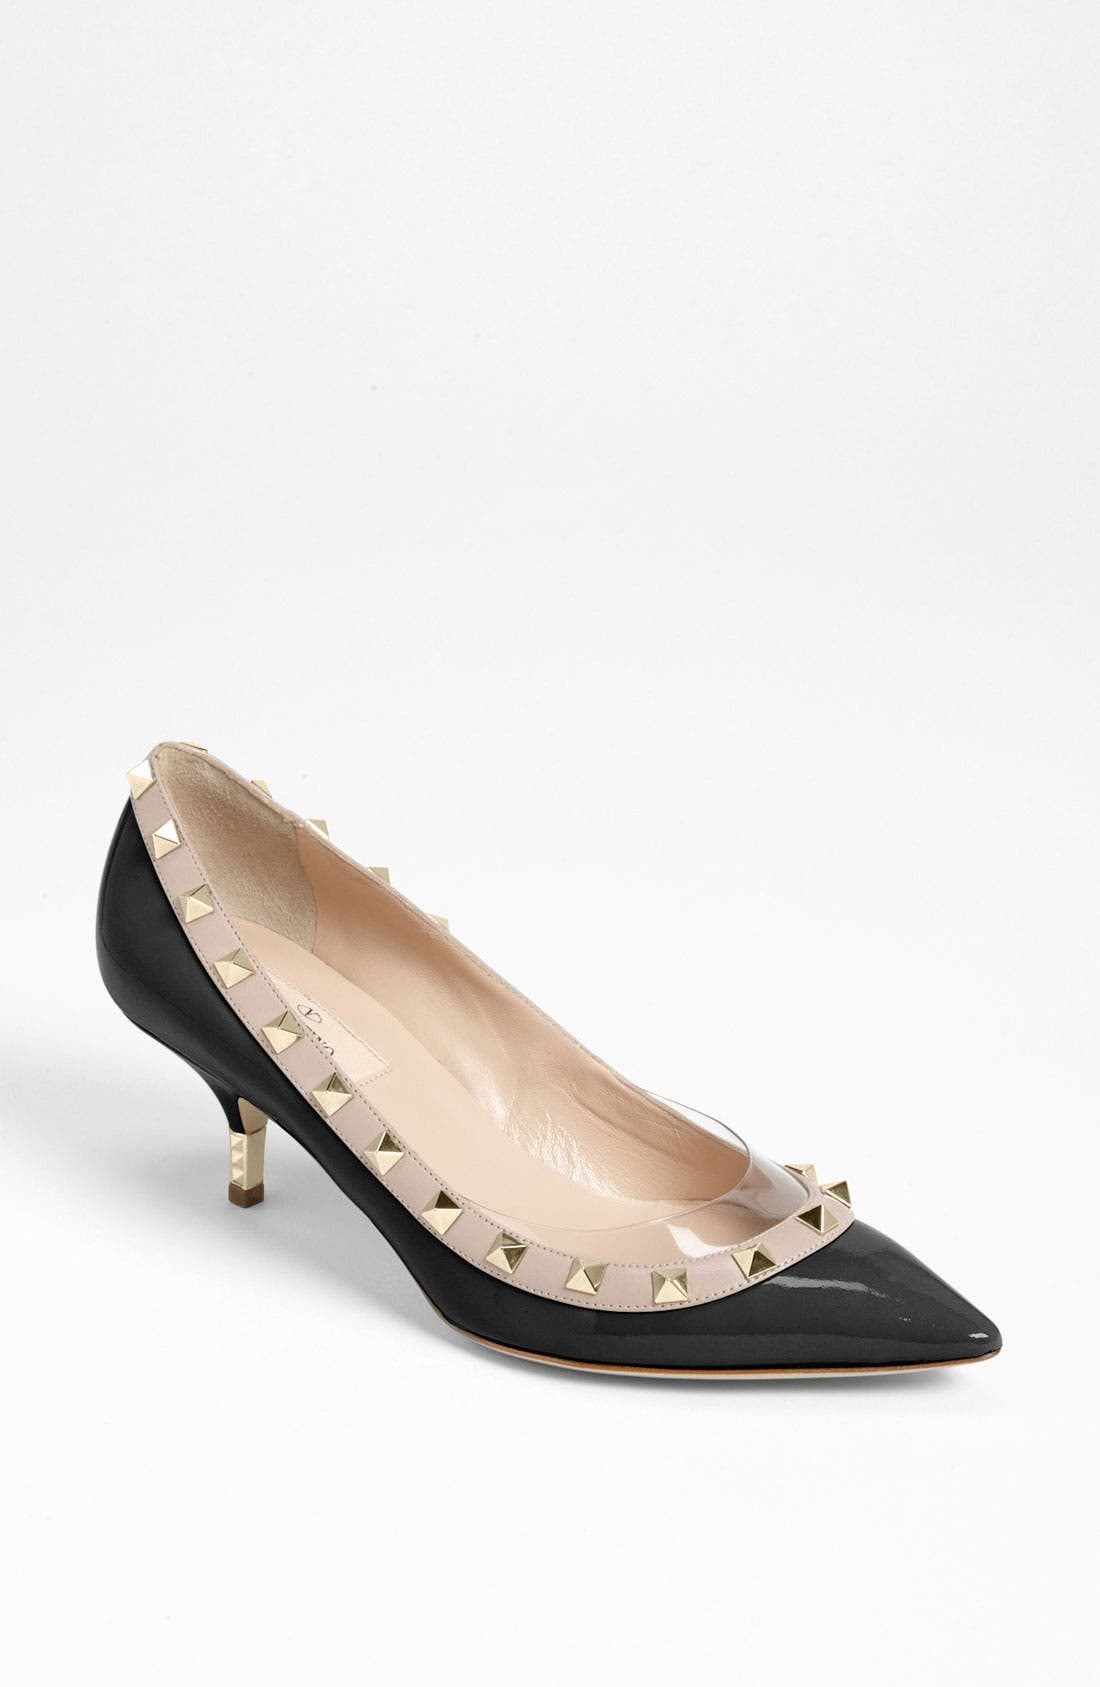 Alternate Image 1 Selected - Valentino 'Rockstud' Metal Heel Pump